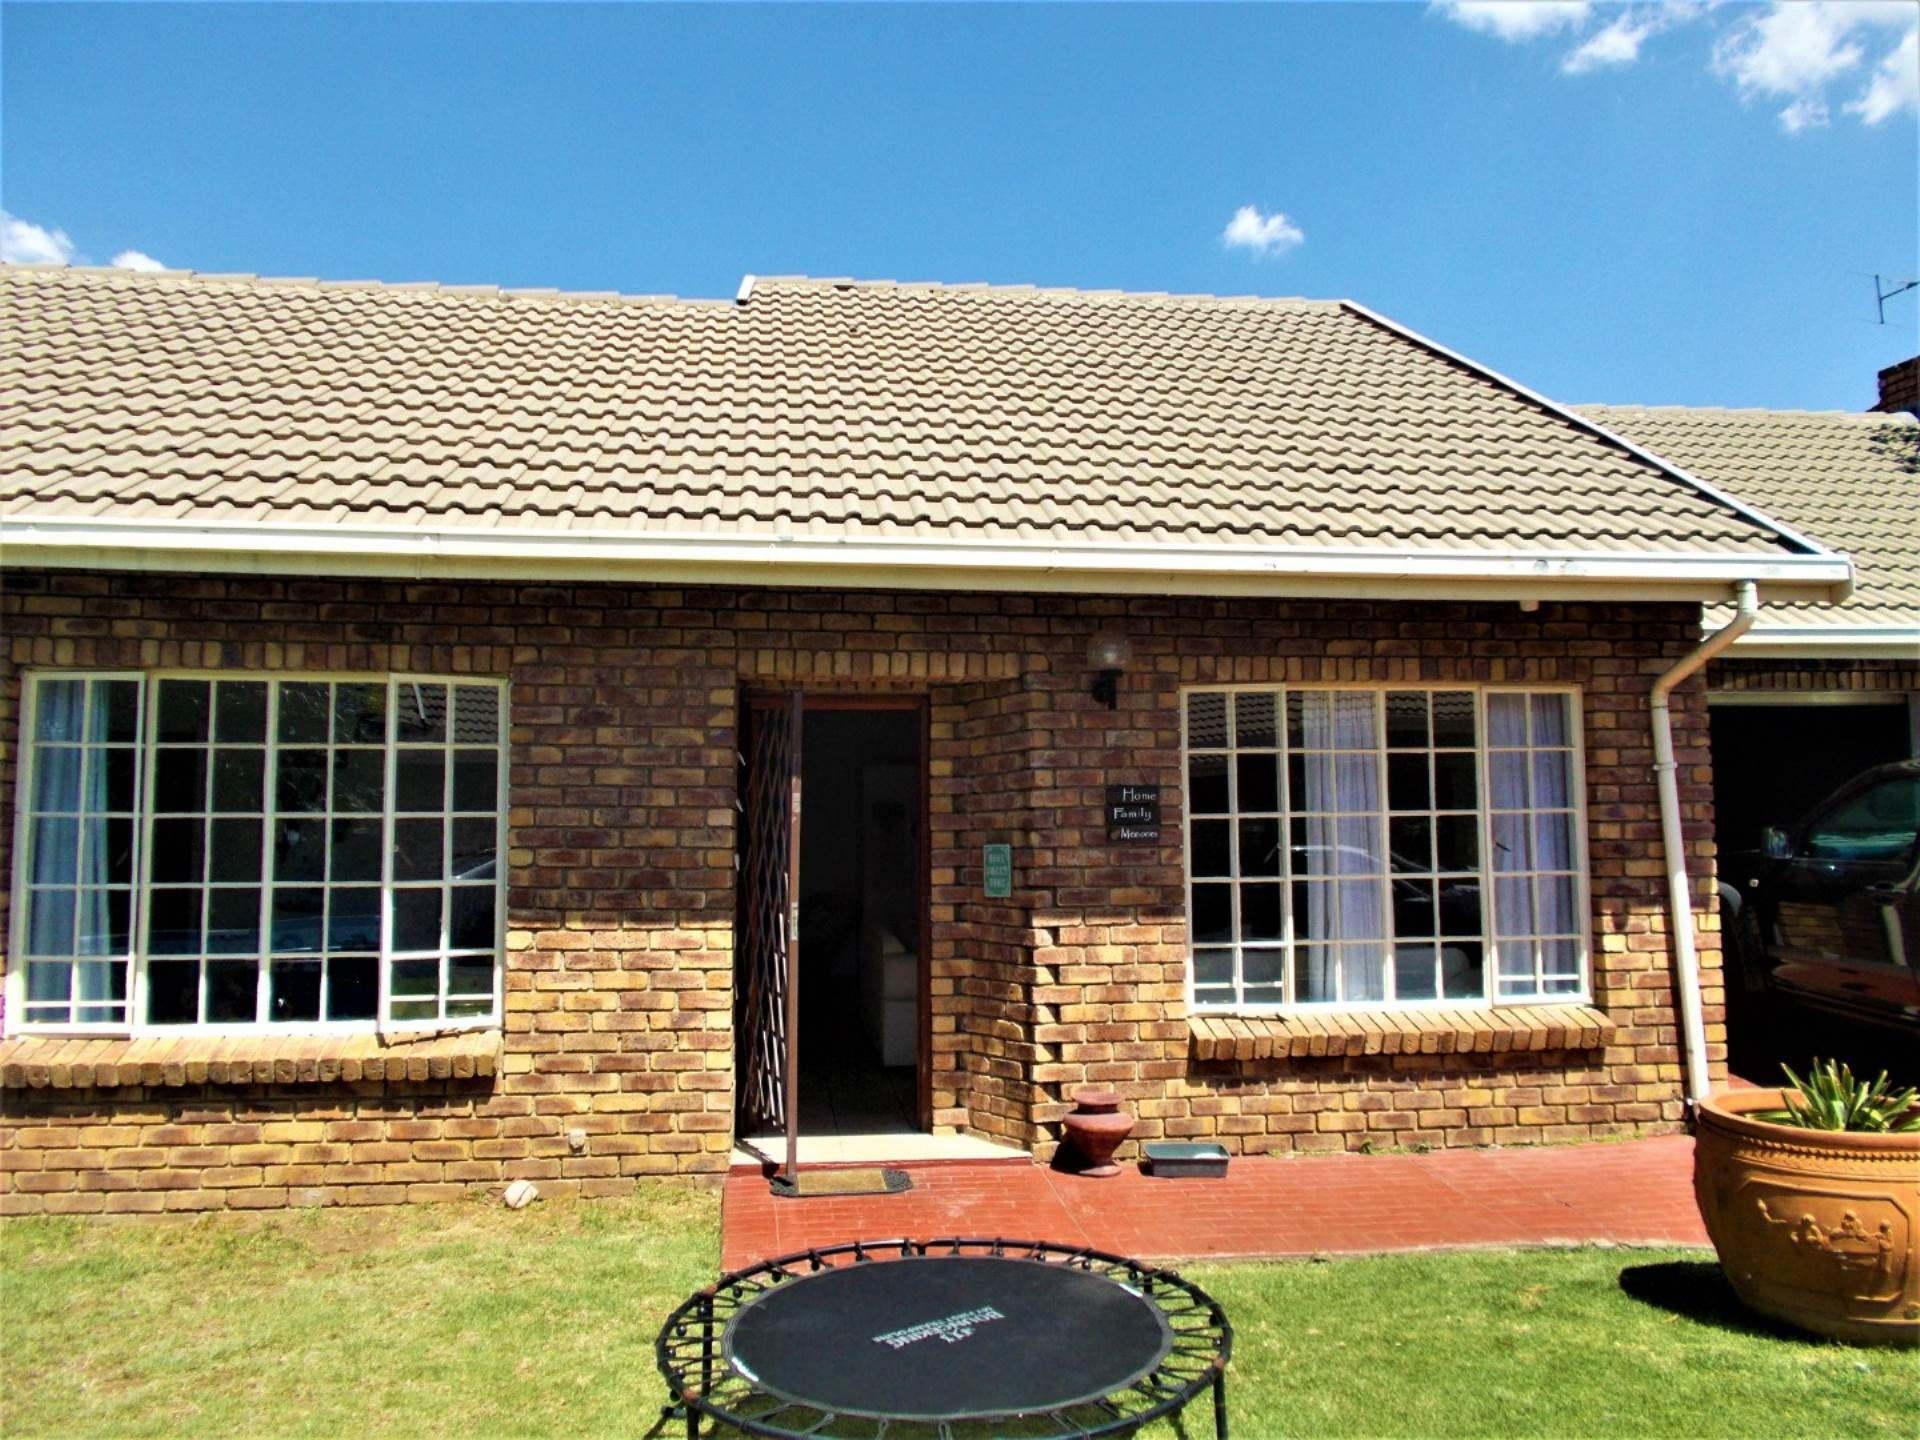 3 BedroomTownhouse For Sale In Dunnottar